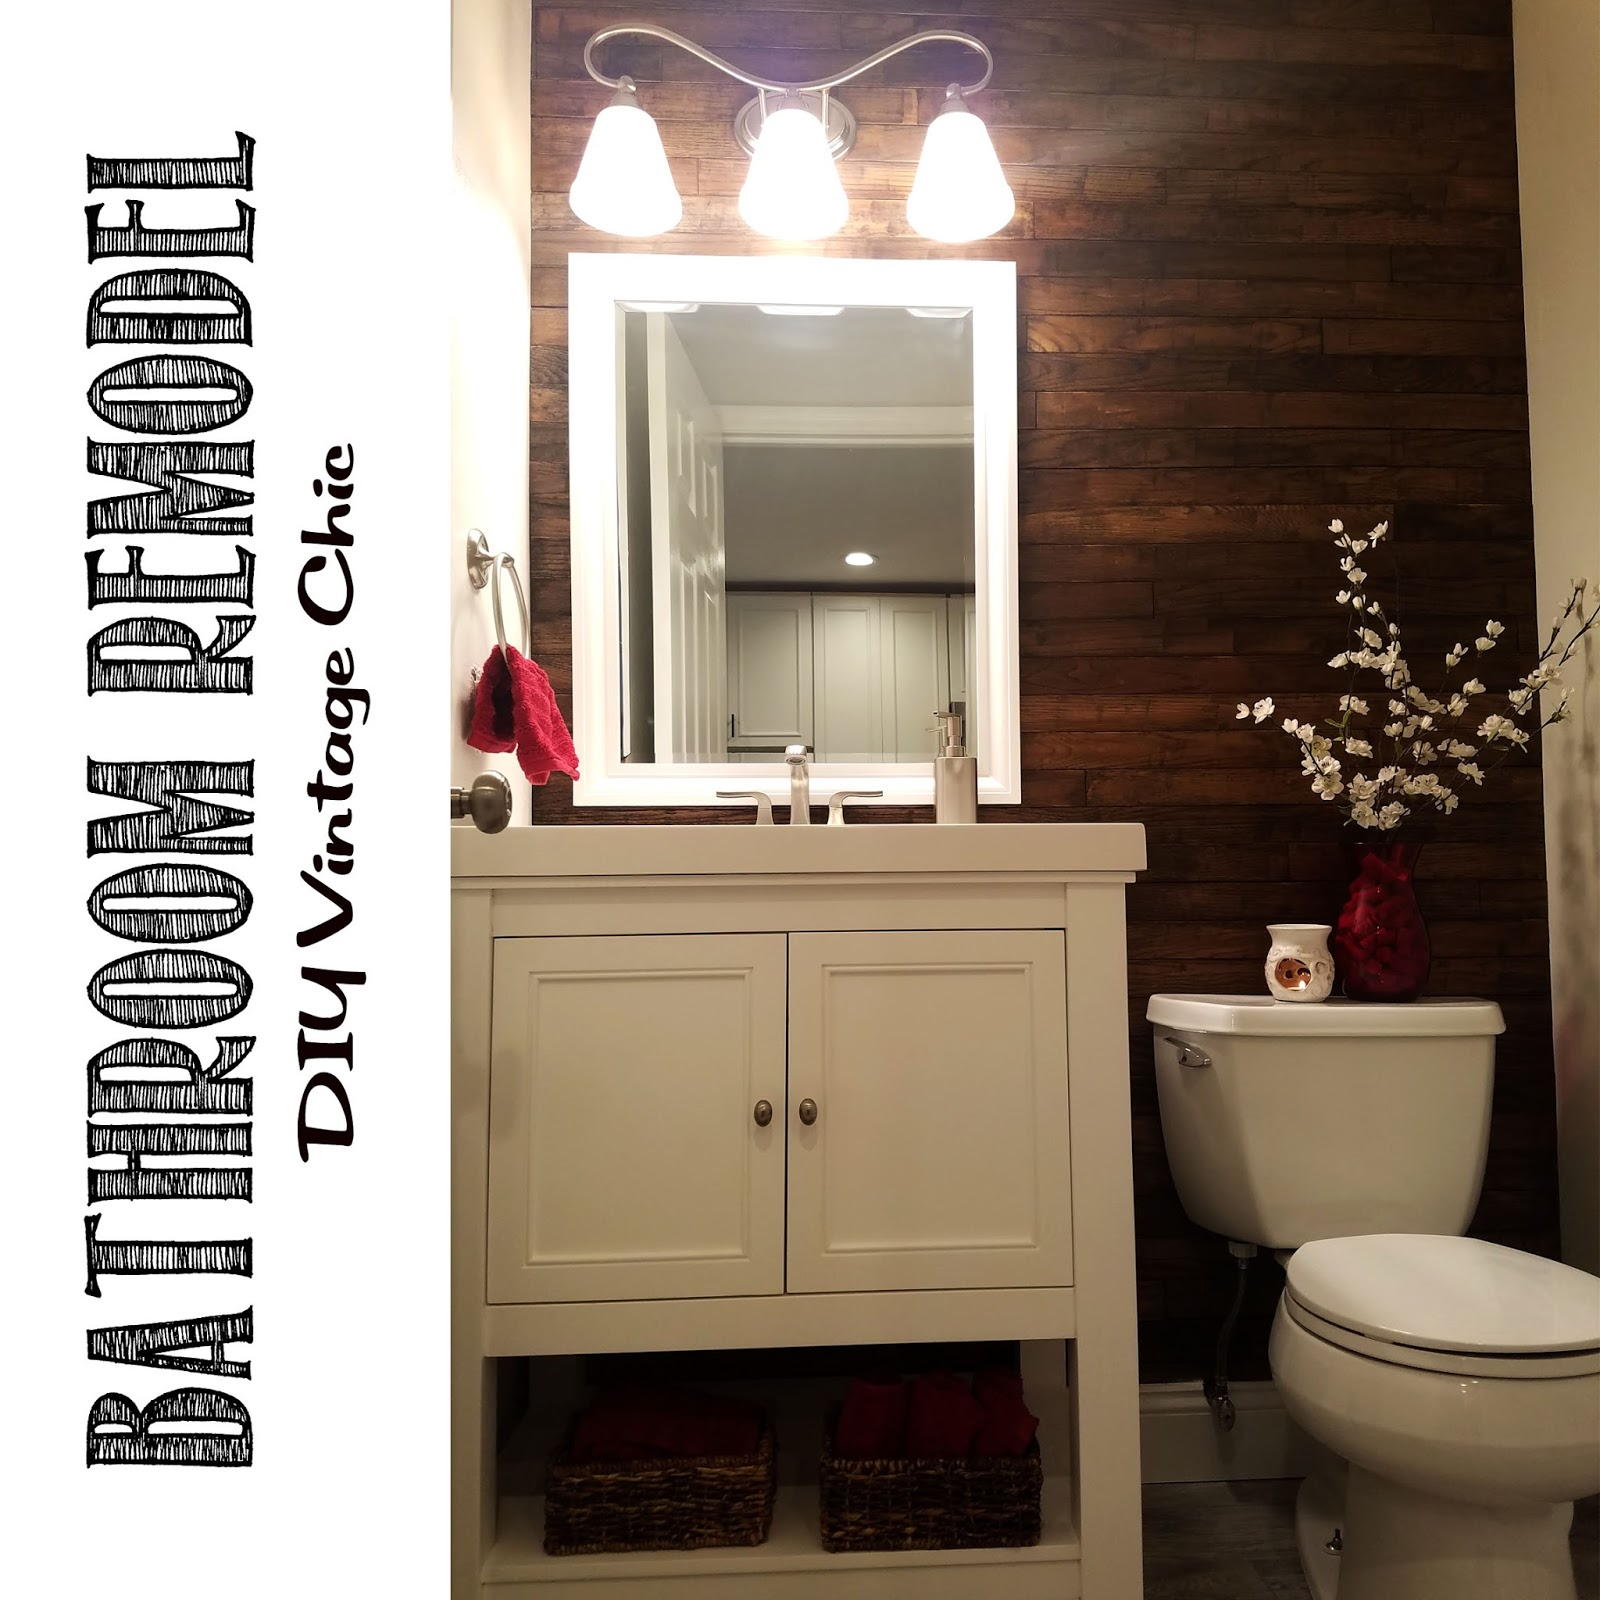 Vintage Bathroom Remodel Don ut forget to stop by and Like my Facebook Page and Follow me on Twitter